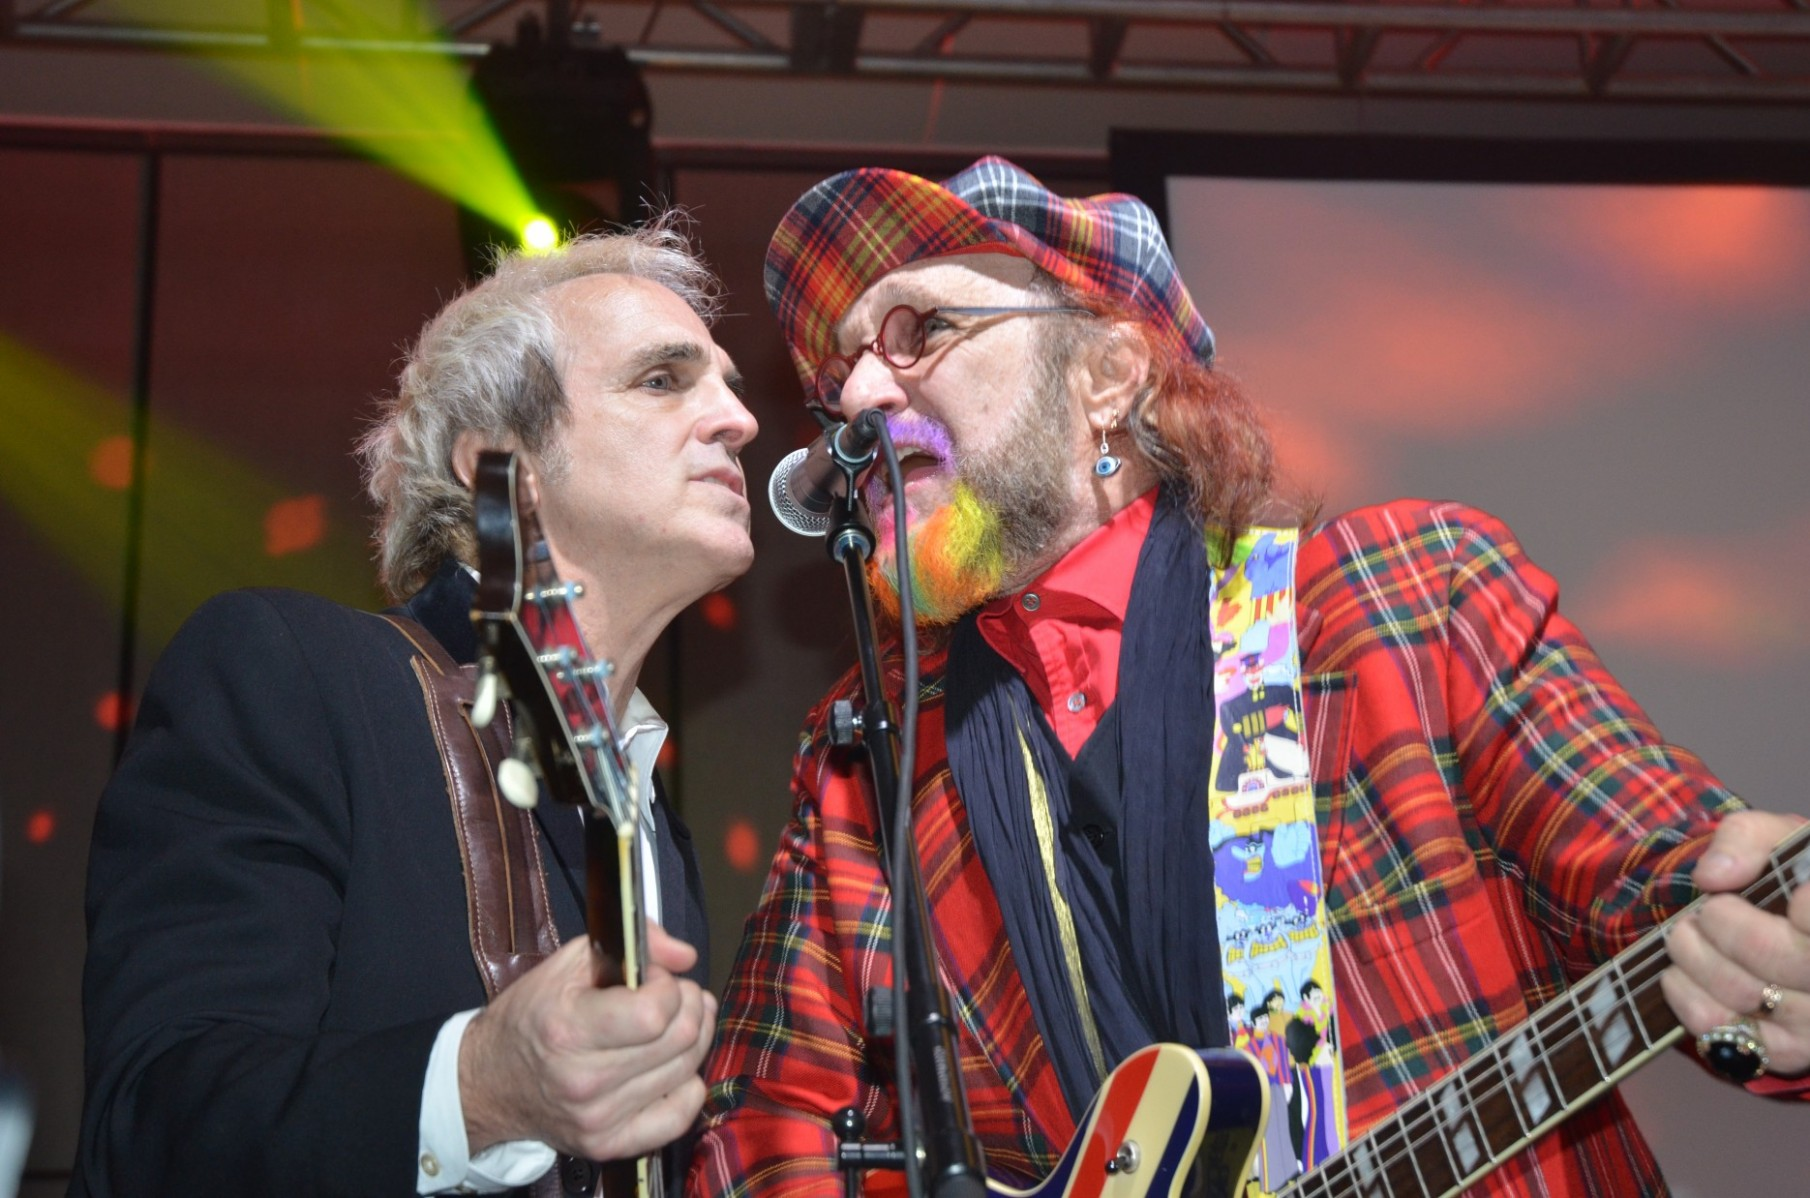 Glen Burtnik of Liverpool and Mark Hudson share the microphone during the Grand Jam Finale.